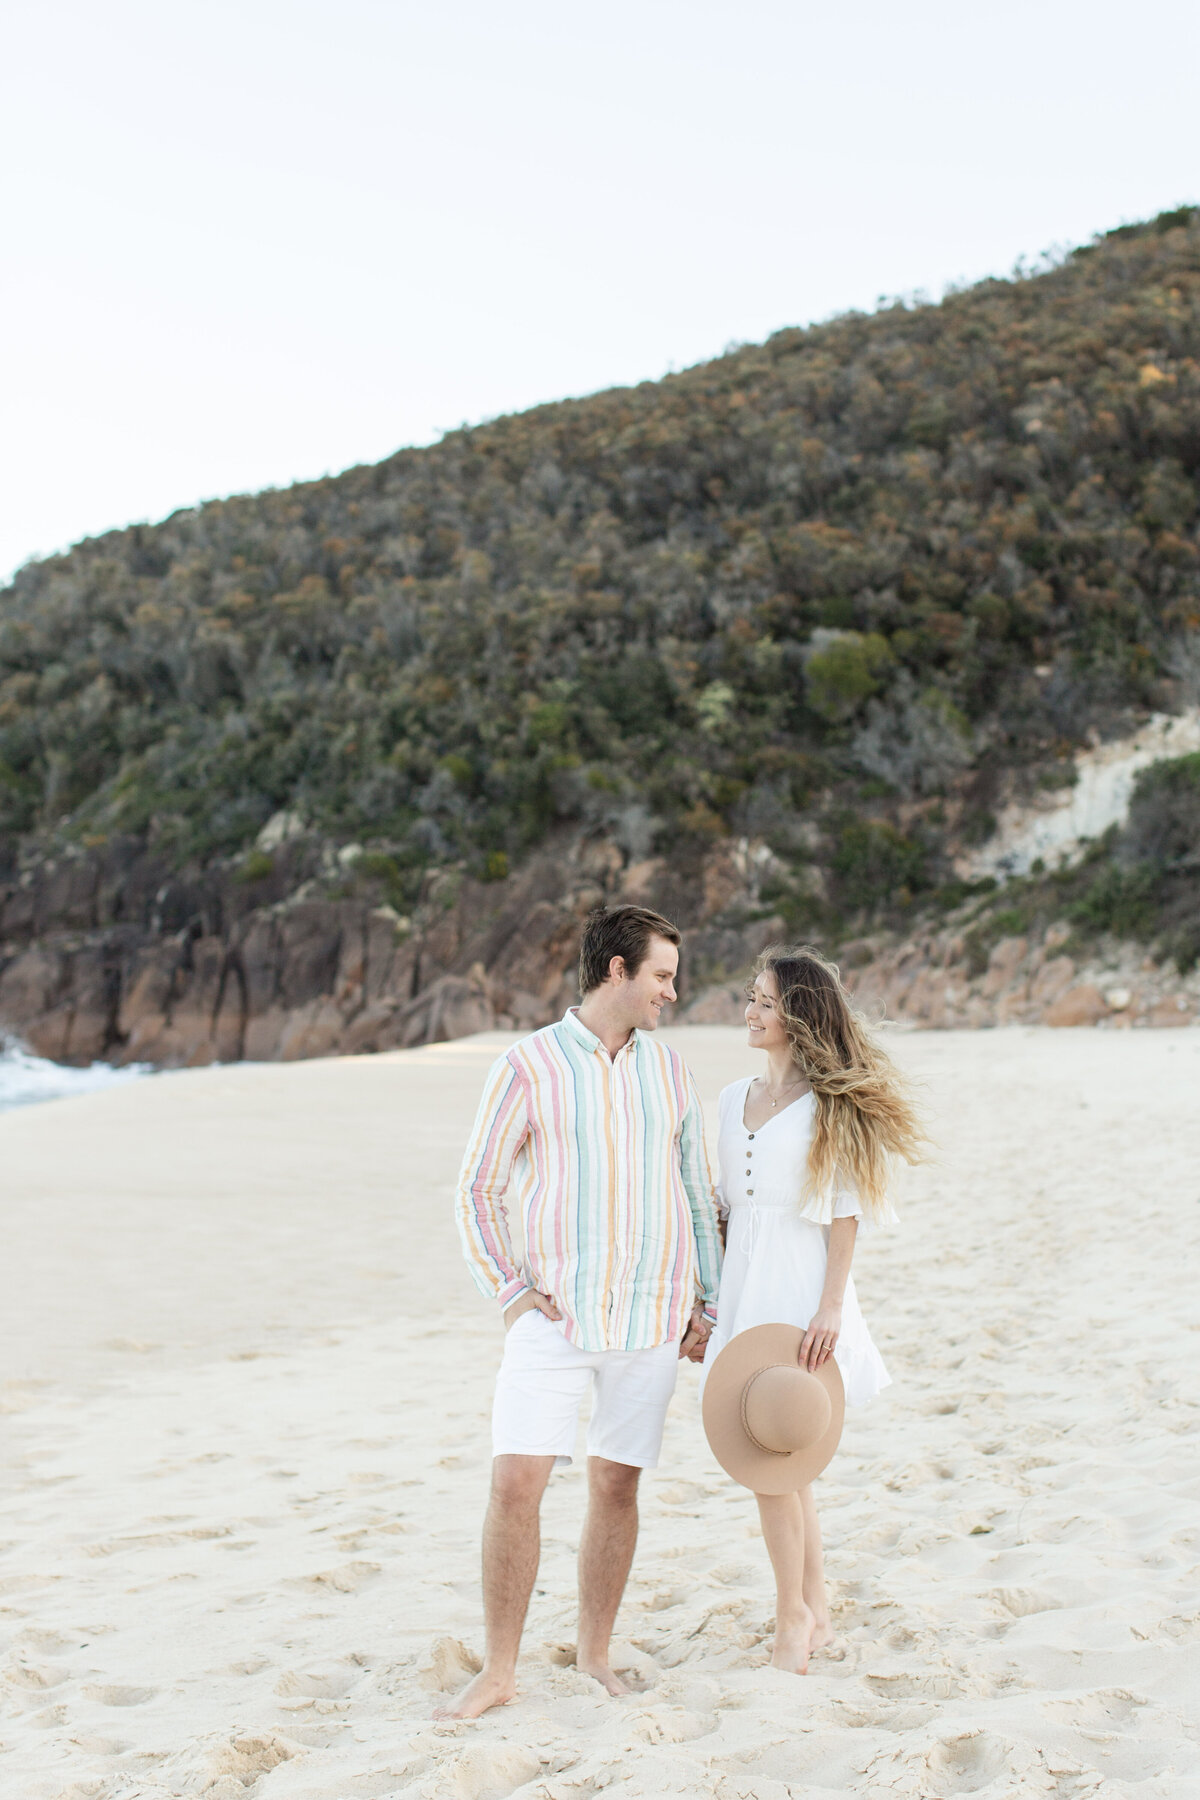 Newcastle NSW Wedding Photographer, Port Stephens Zenith Beach, Hunter Valley Photographer - Fine Art Film Wedding Photographer - Sheri McMahon -00013